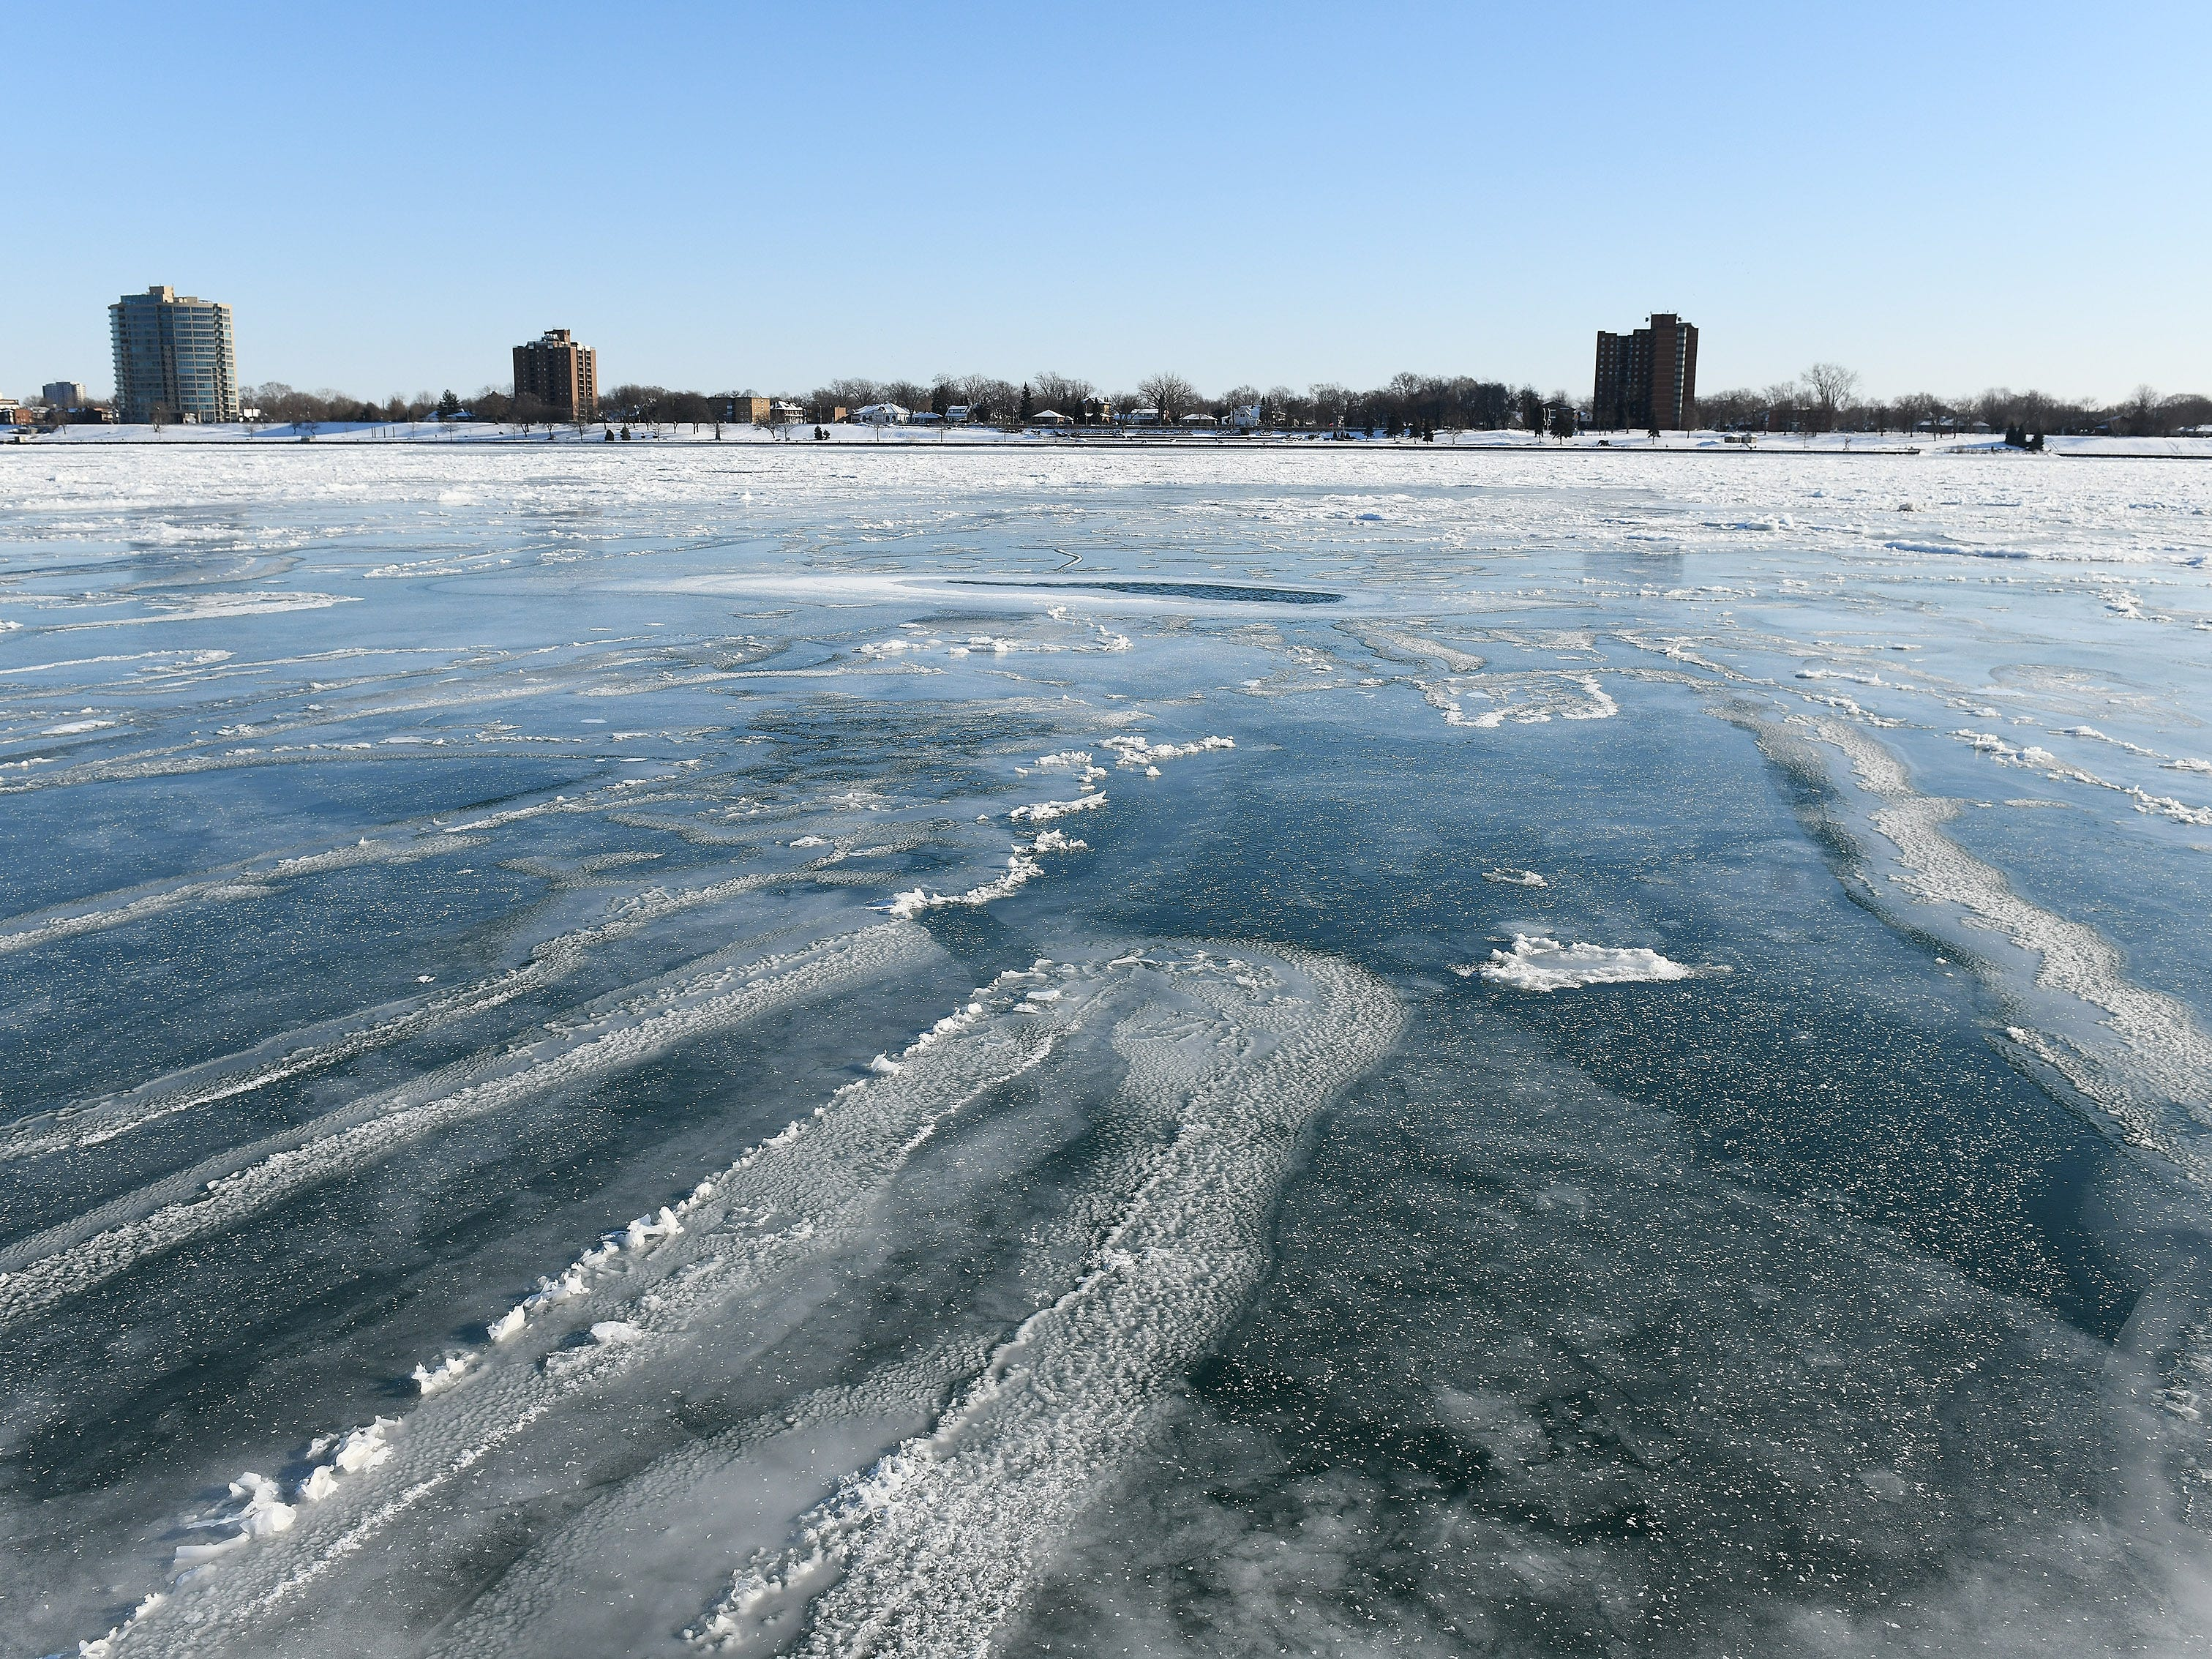 Ice floes on the partially frozen Detroit River.